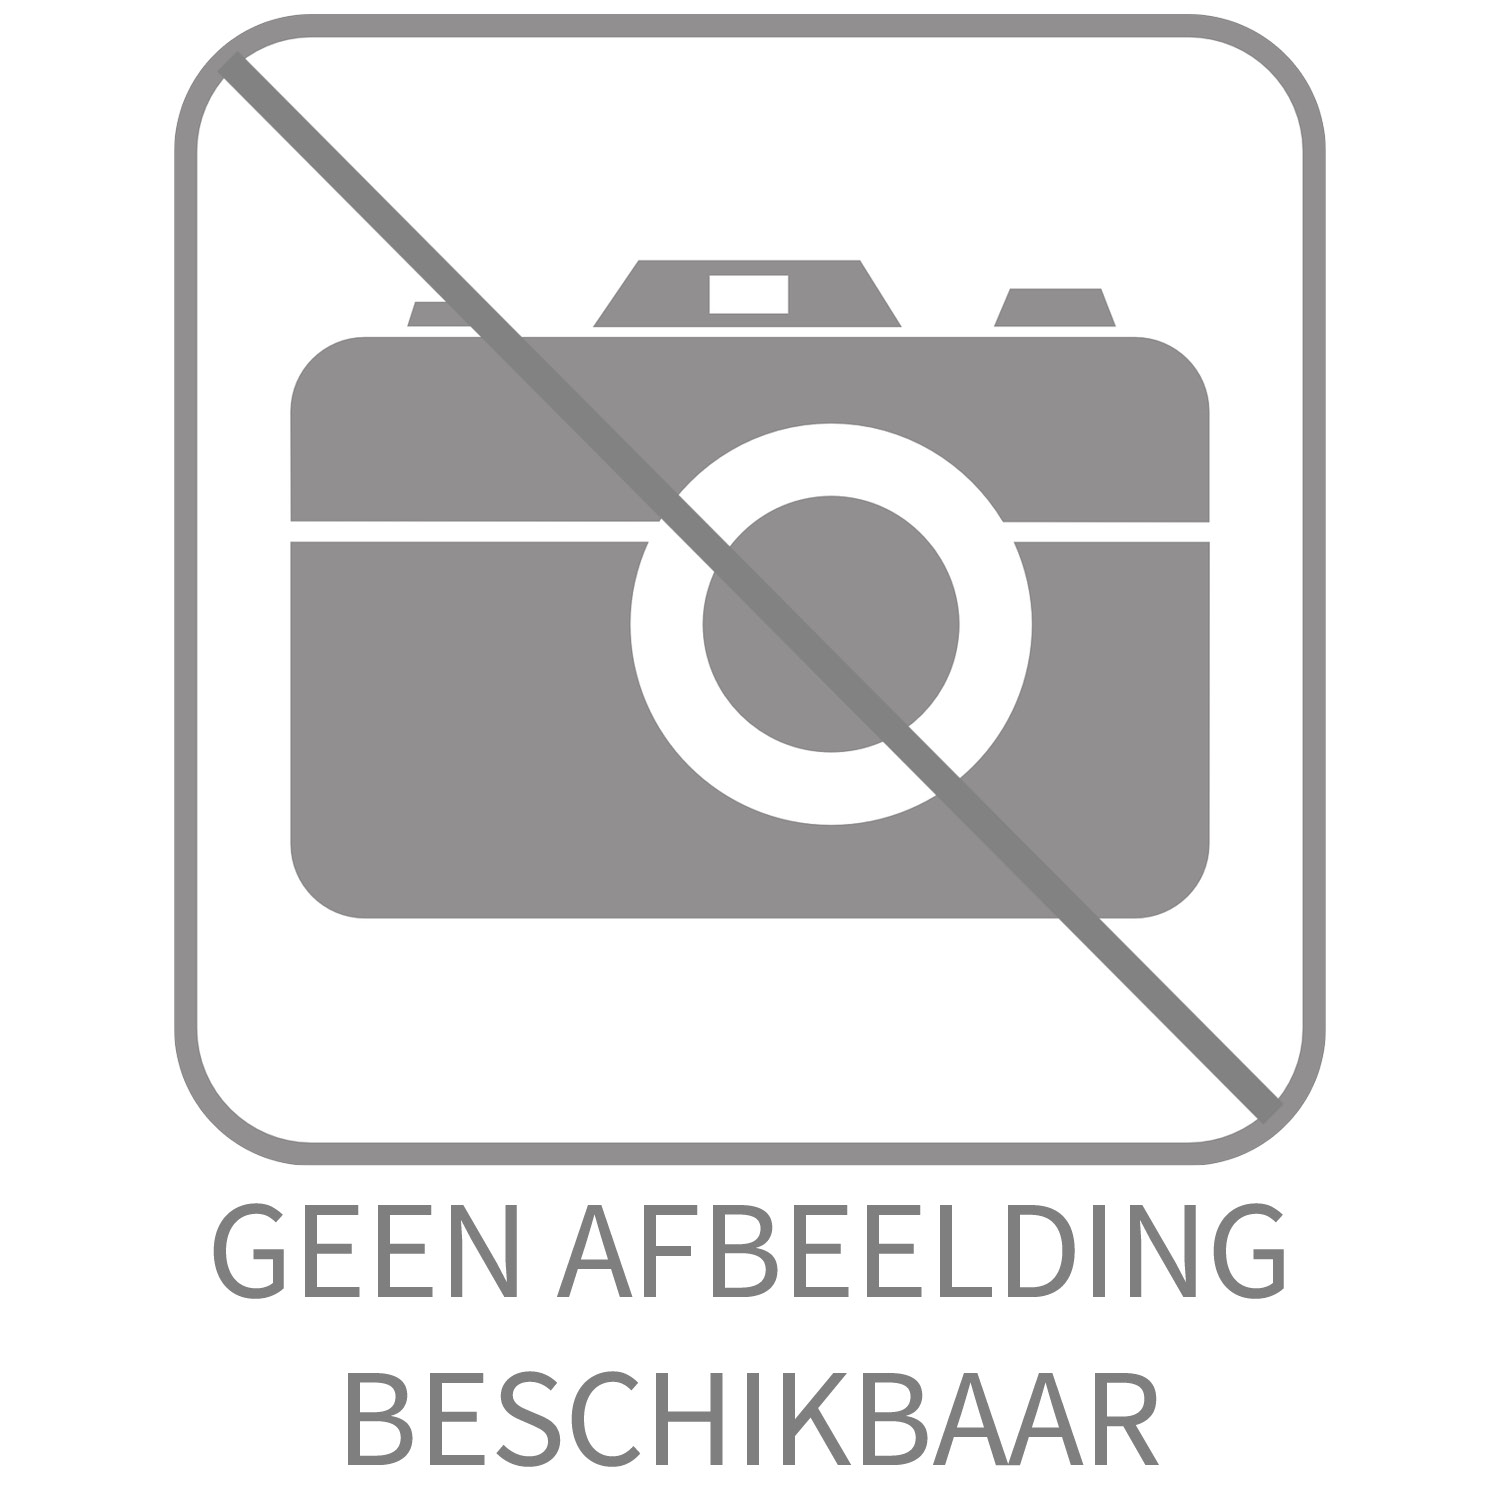 diam 300 mm parkeerverbod van Pickup (pictogram)